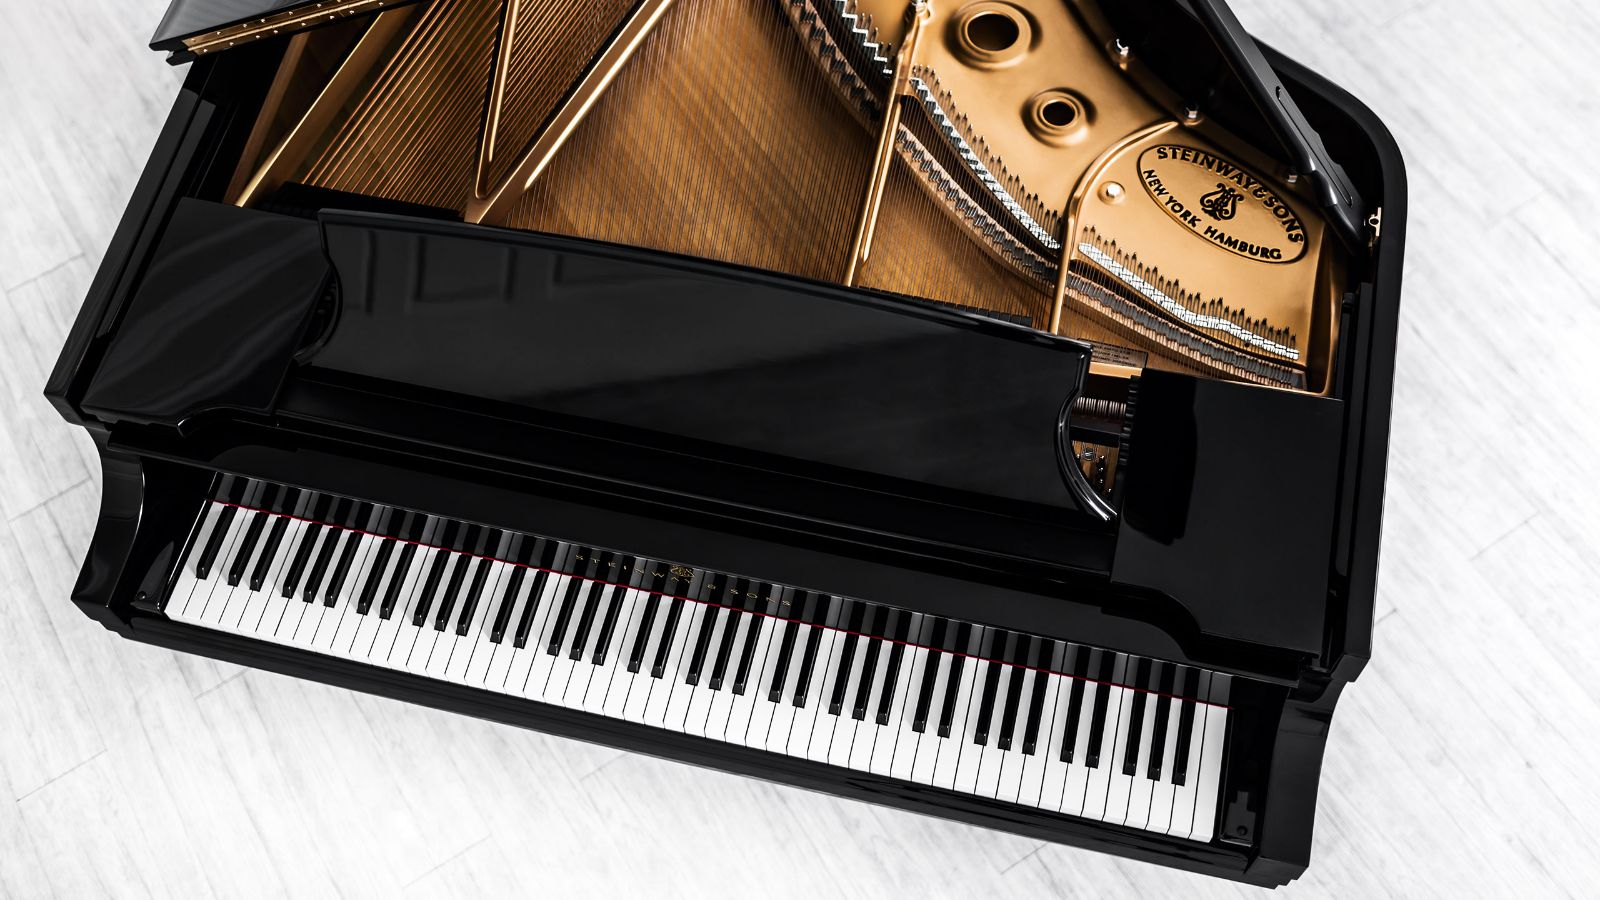 steinway pianos steinway sons. Black Bedroom Furniture Sets. Home Design Ideas